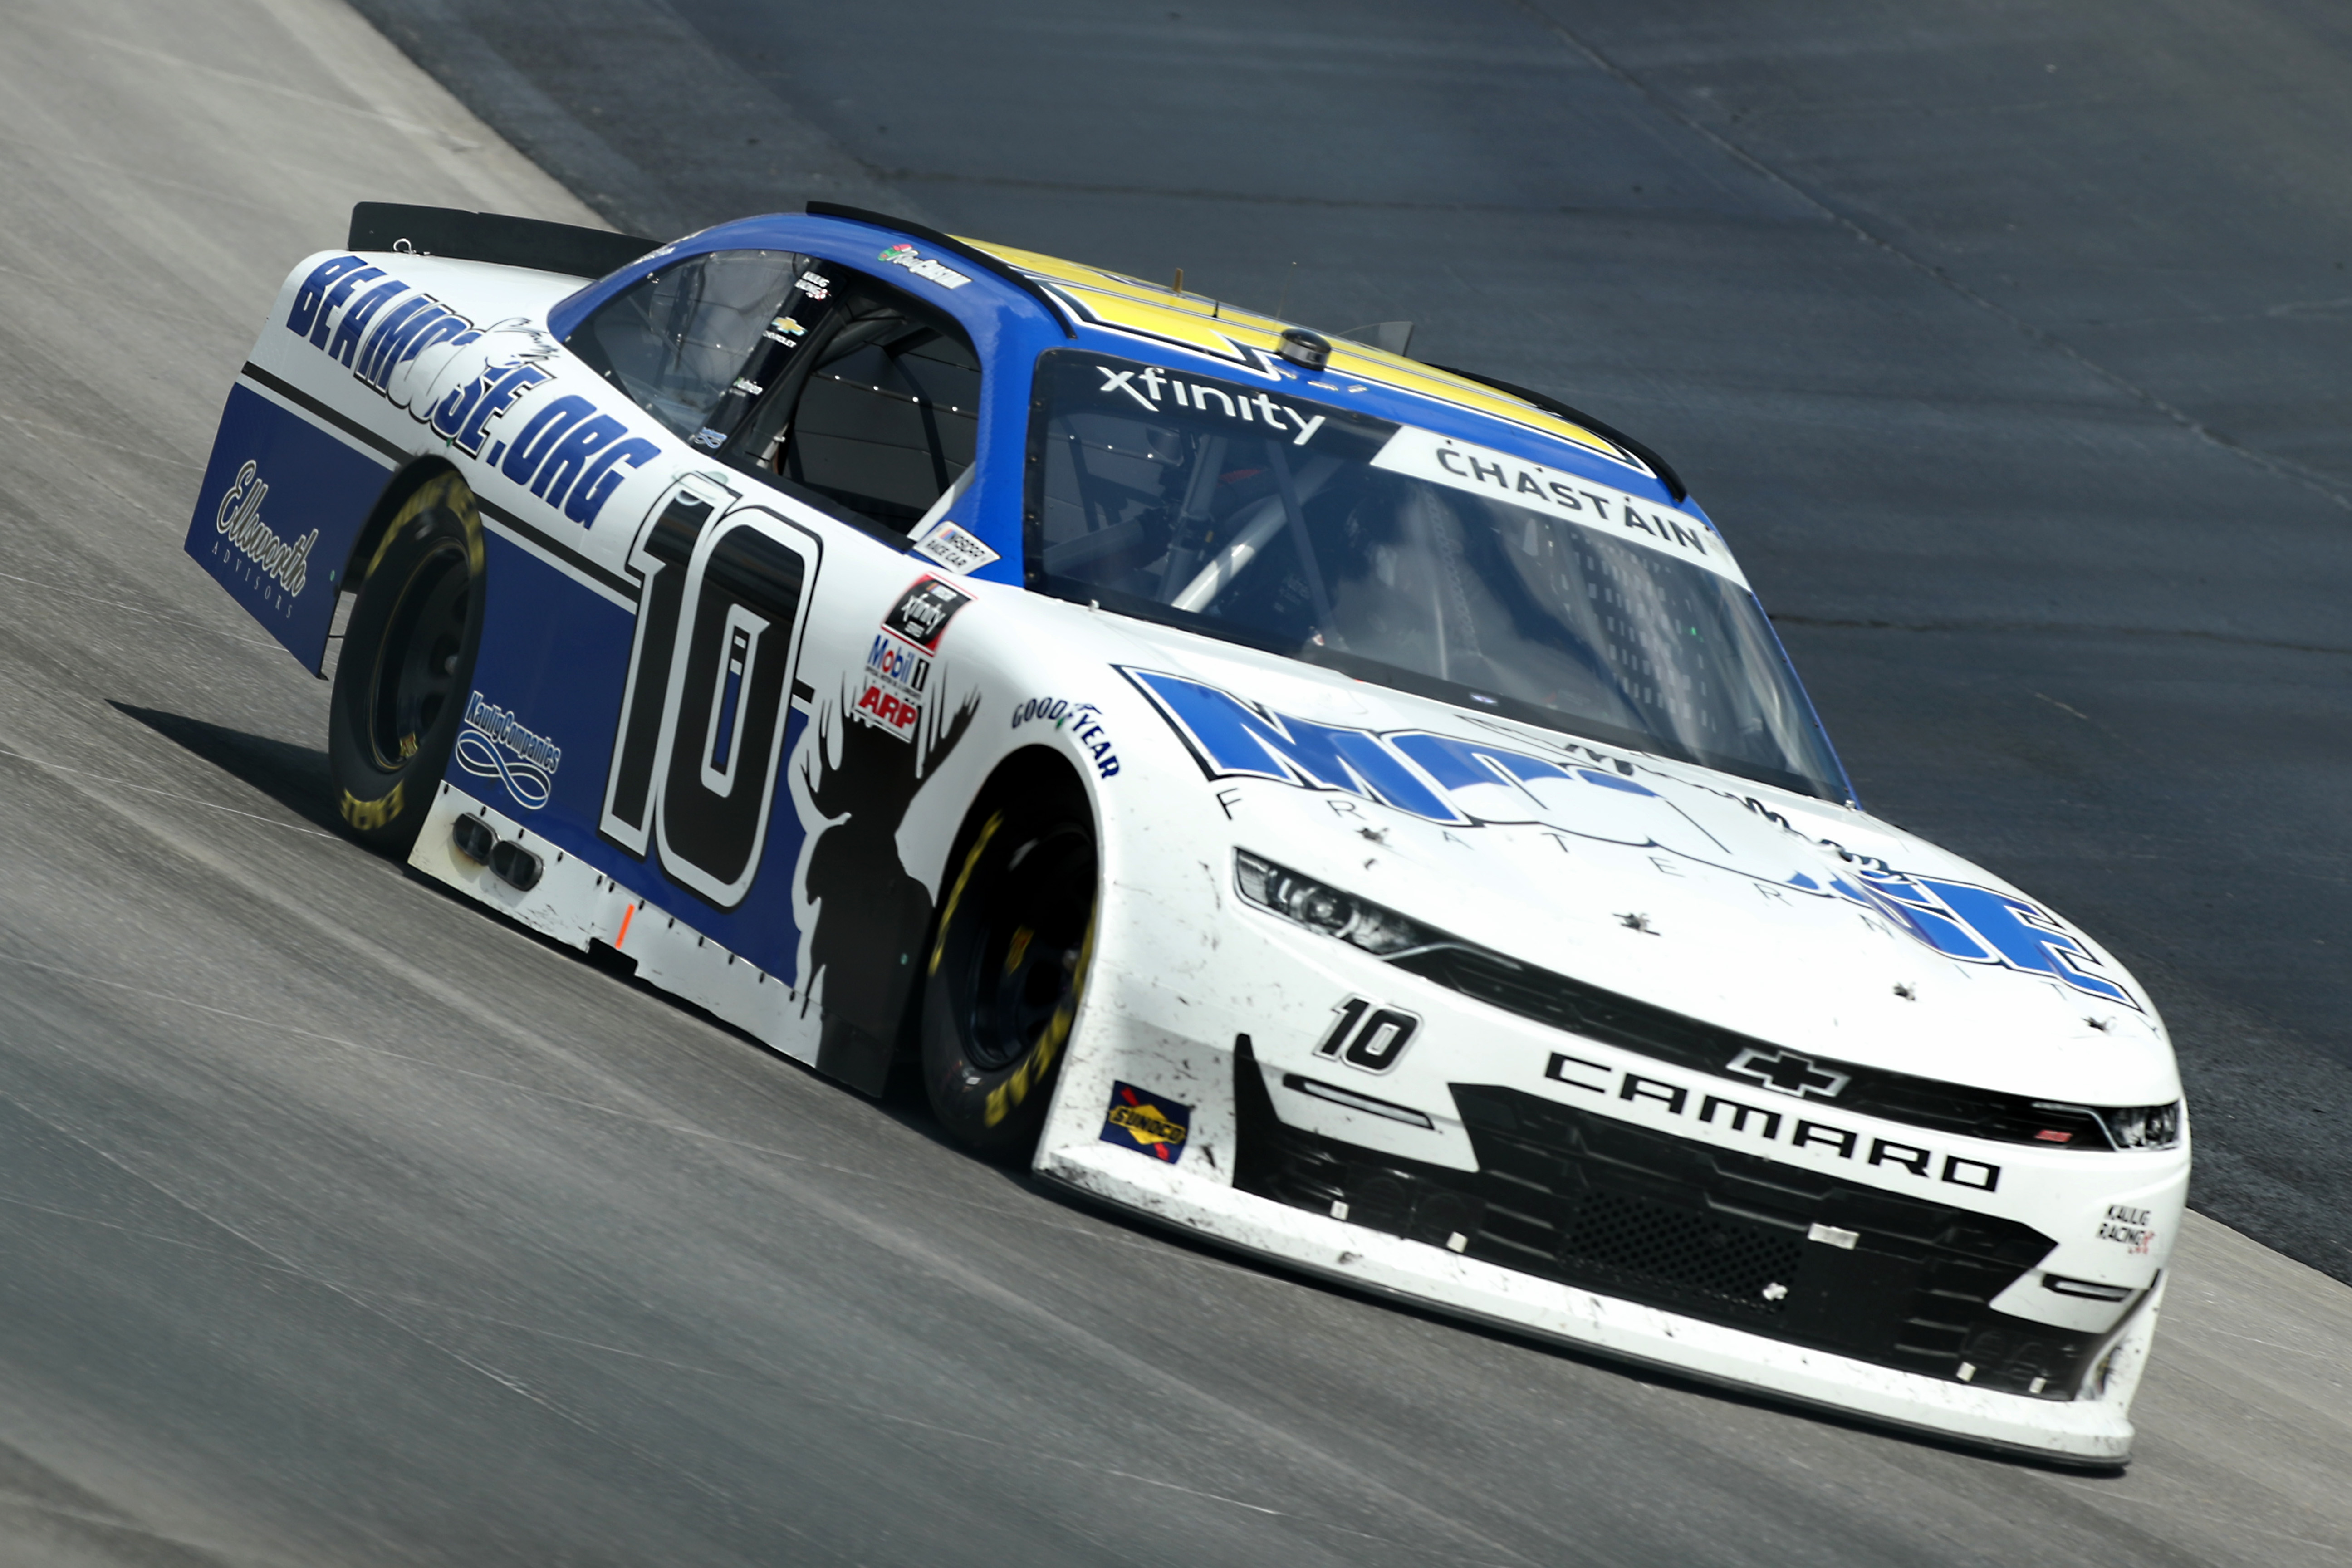 Ross Chastain, driver of the #10 Moose Fraternity Chevrolet, drives during the NASCAR Xfinity Series Drydene 200 at Dover International Speedway on August 23, 2020 in Dover, Delaware.